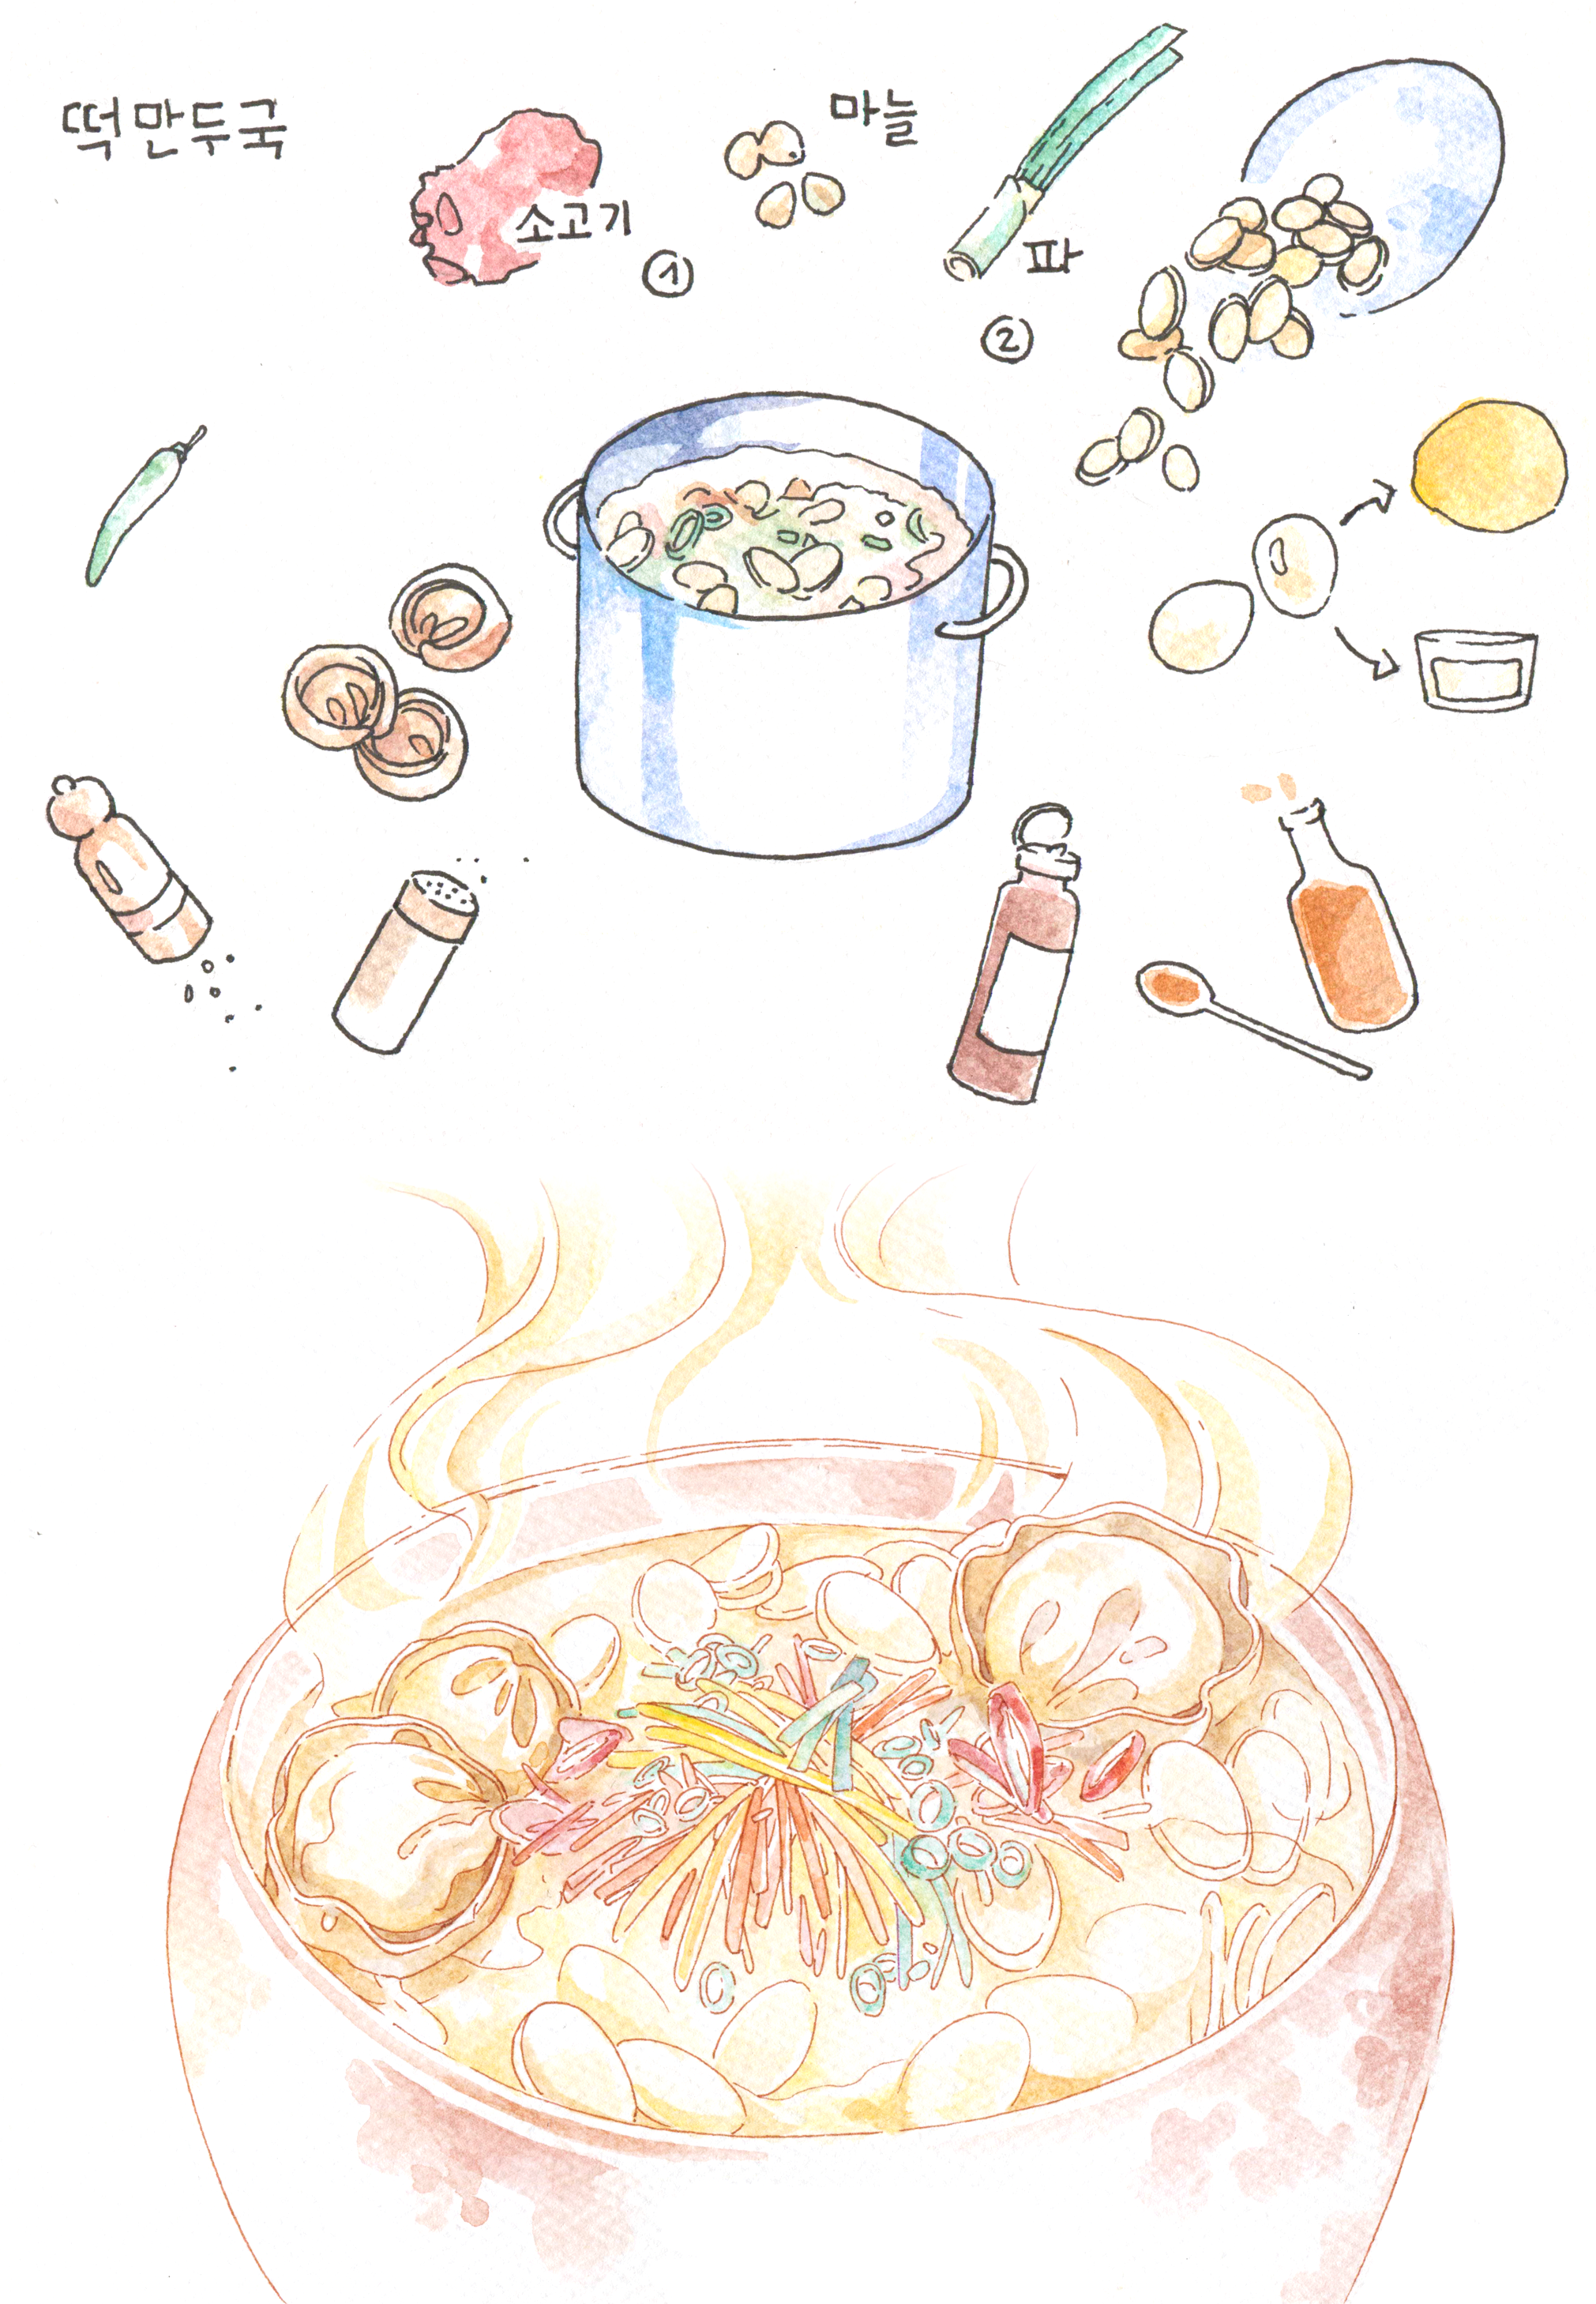 Recipe illustration for Mandu Ddeok Guk - Soup with rice cakes and dumplings for Korean New Year celebrations.